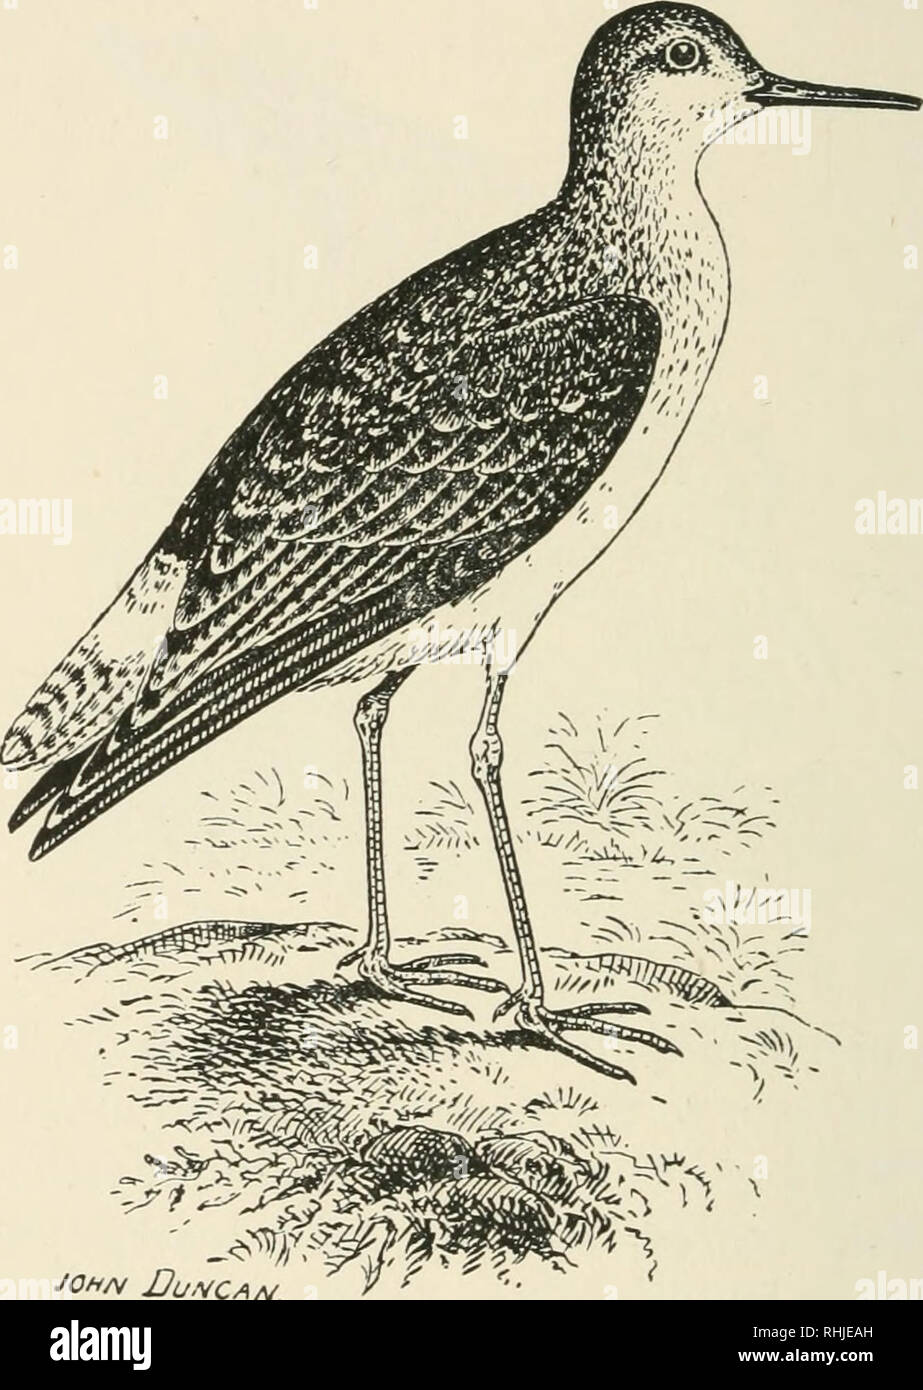 . Birds of the British Isles. Birds -- Great Britain; Birds -- Ireland. 330 BIRDS OF THE BRITISH ISLES. l^ellow^IegQcb Sanbpipen. The Yellow-legged Sandpiper {Totanusflavipes, Gmelin) is a very rare abnormal autumn migrant to the British Isles, and inhabits the Northern Nearctic Region. The adult in nuptial plumage closely resembles the wood sandpiper in the same stage, but is larger in size, and the former shows less white on the rump in proportion, and there are indica- tions of bars at all ages; bill, black and slender; legs and feet, clear yellow. Length, about ten or eleven inches.. Pleas - Stock Image